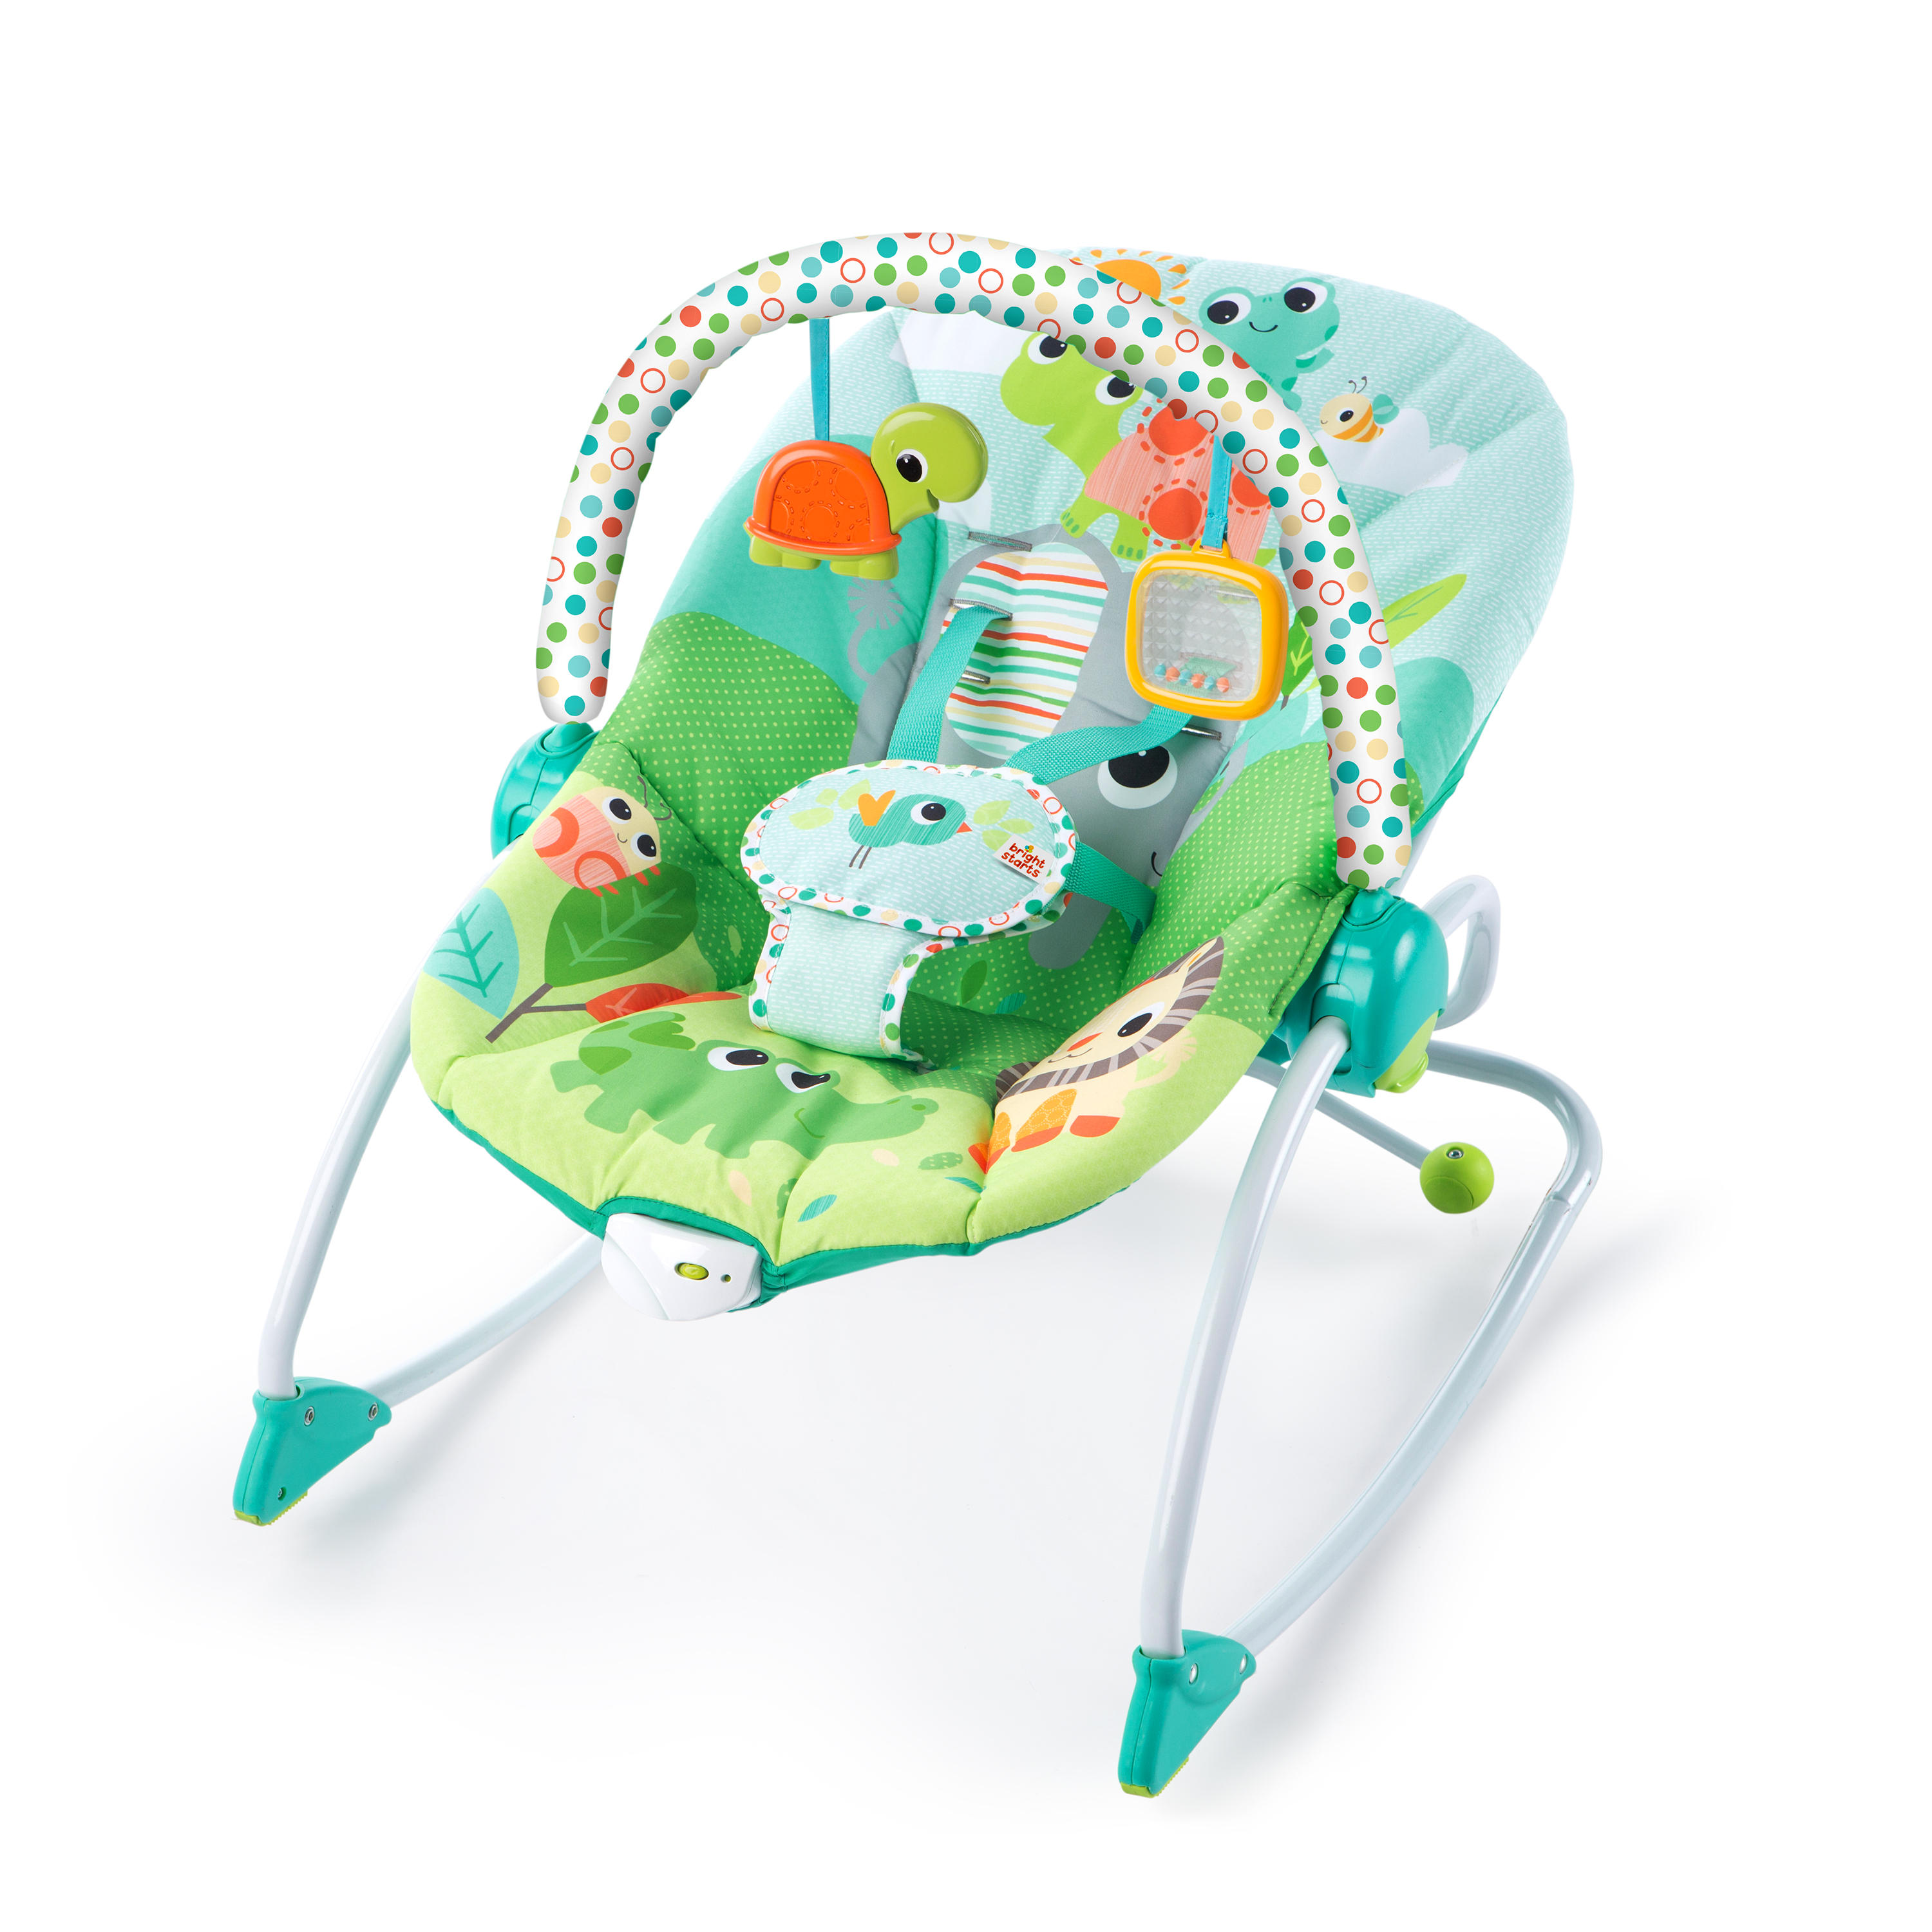 vibrating chair baby stand desk bouncers rockers walmart com product image bright starts infant to toddler rocker seat playful parade